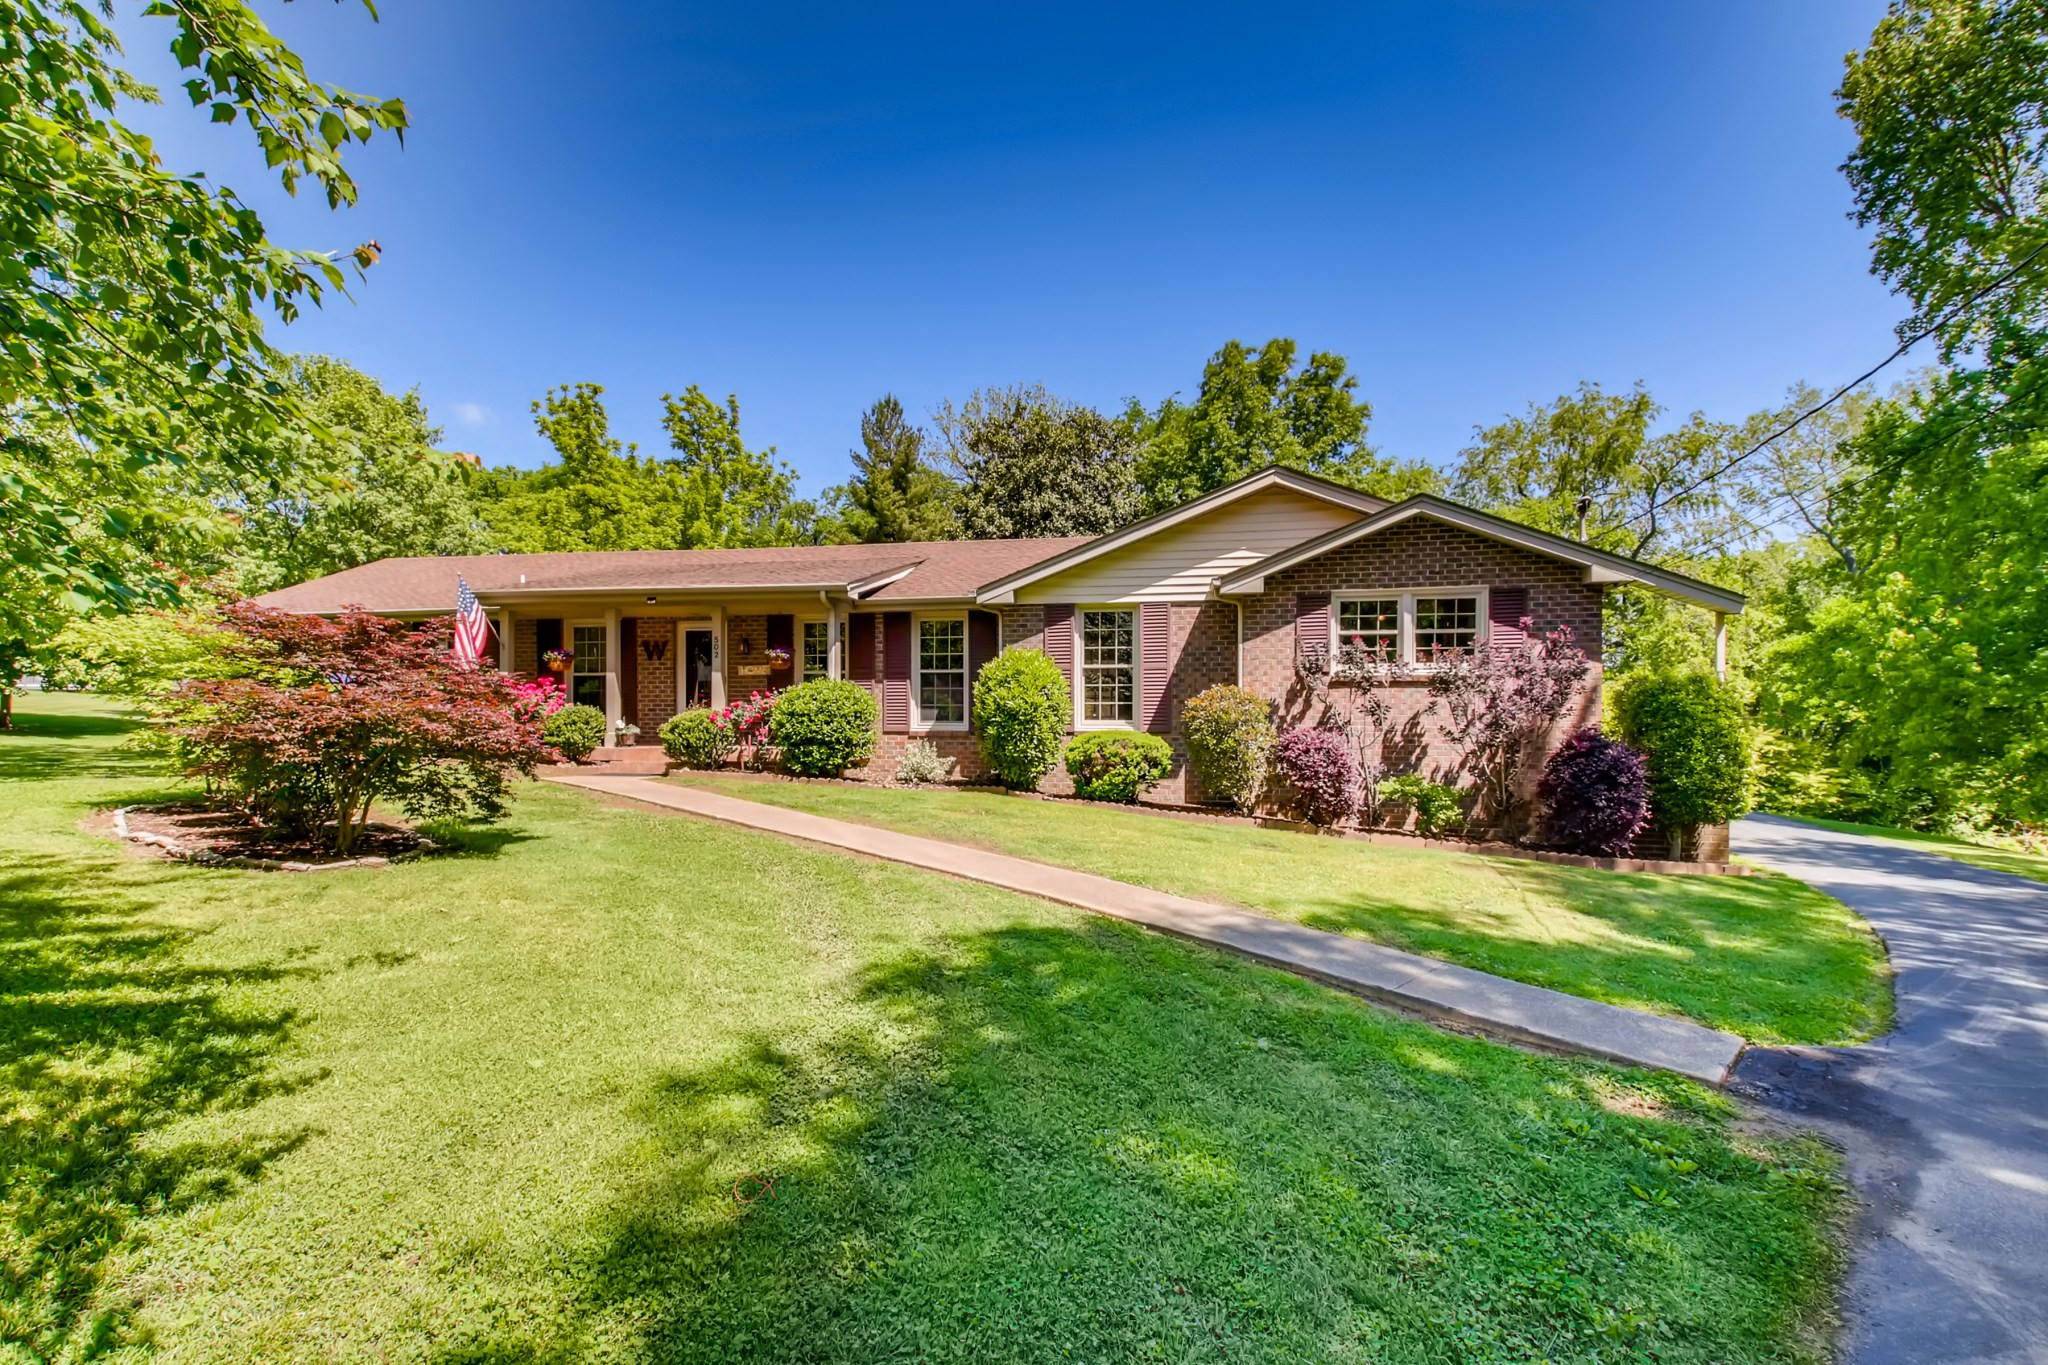 502 Suzanne Ct Property Photo - Mount Juliet, TN real estate listing